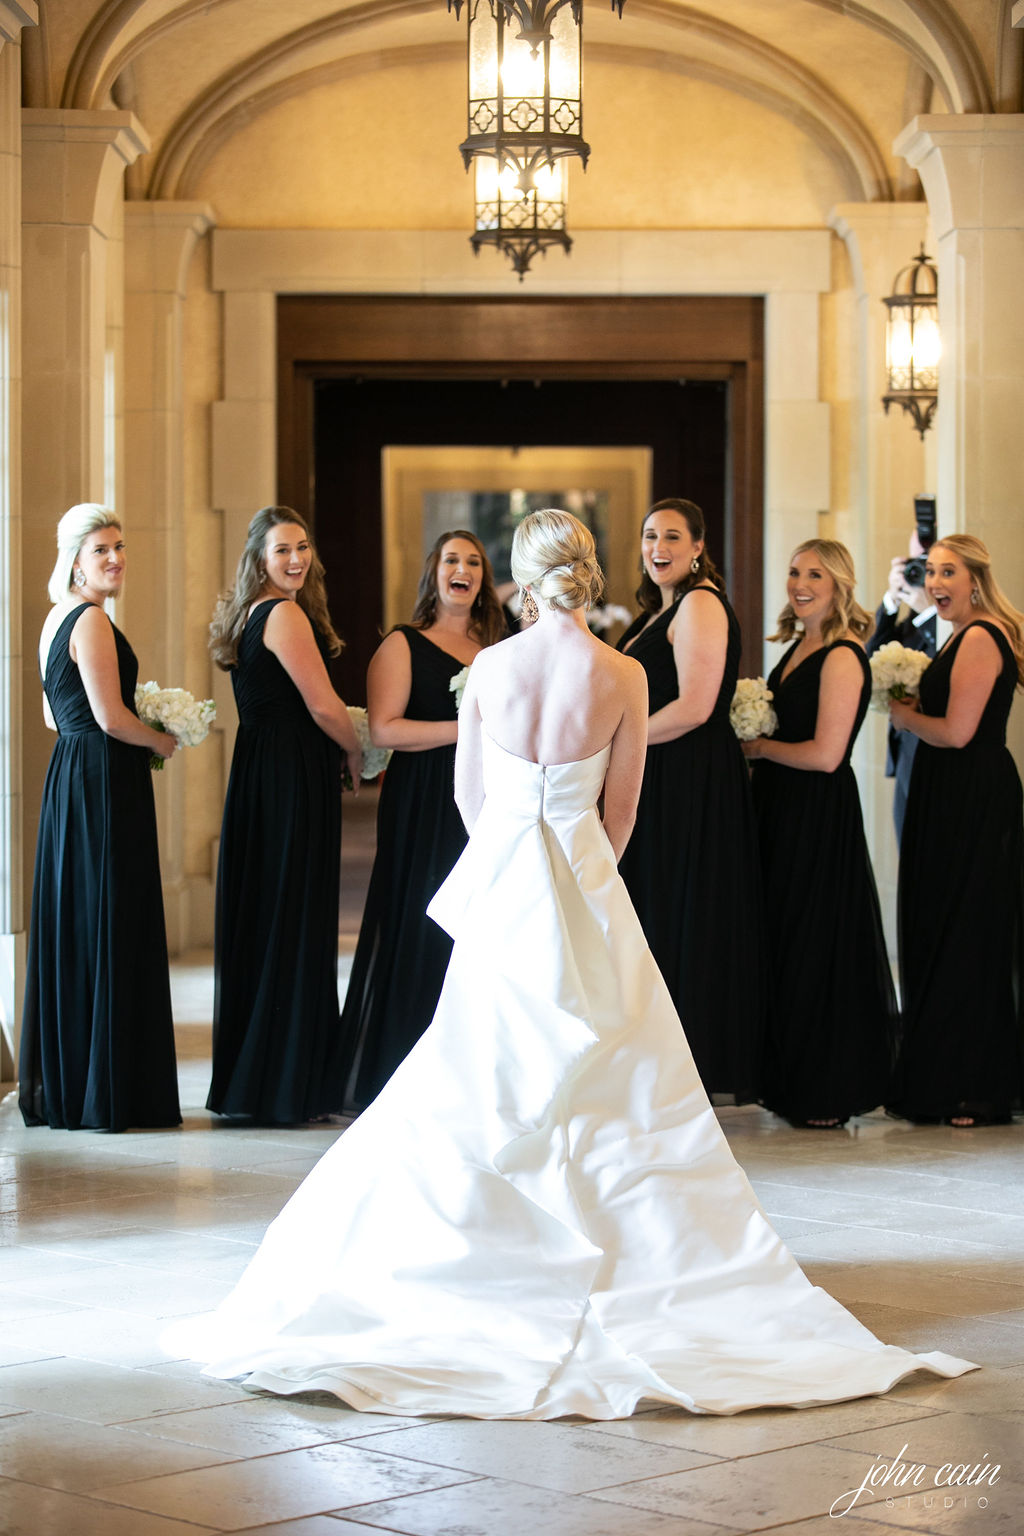 Dallas Country Club Wedding - Timeless Dallas Wedding - Wedding Planner in Dallas - Allday Events - Prep - 74.JPG